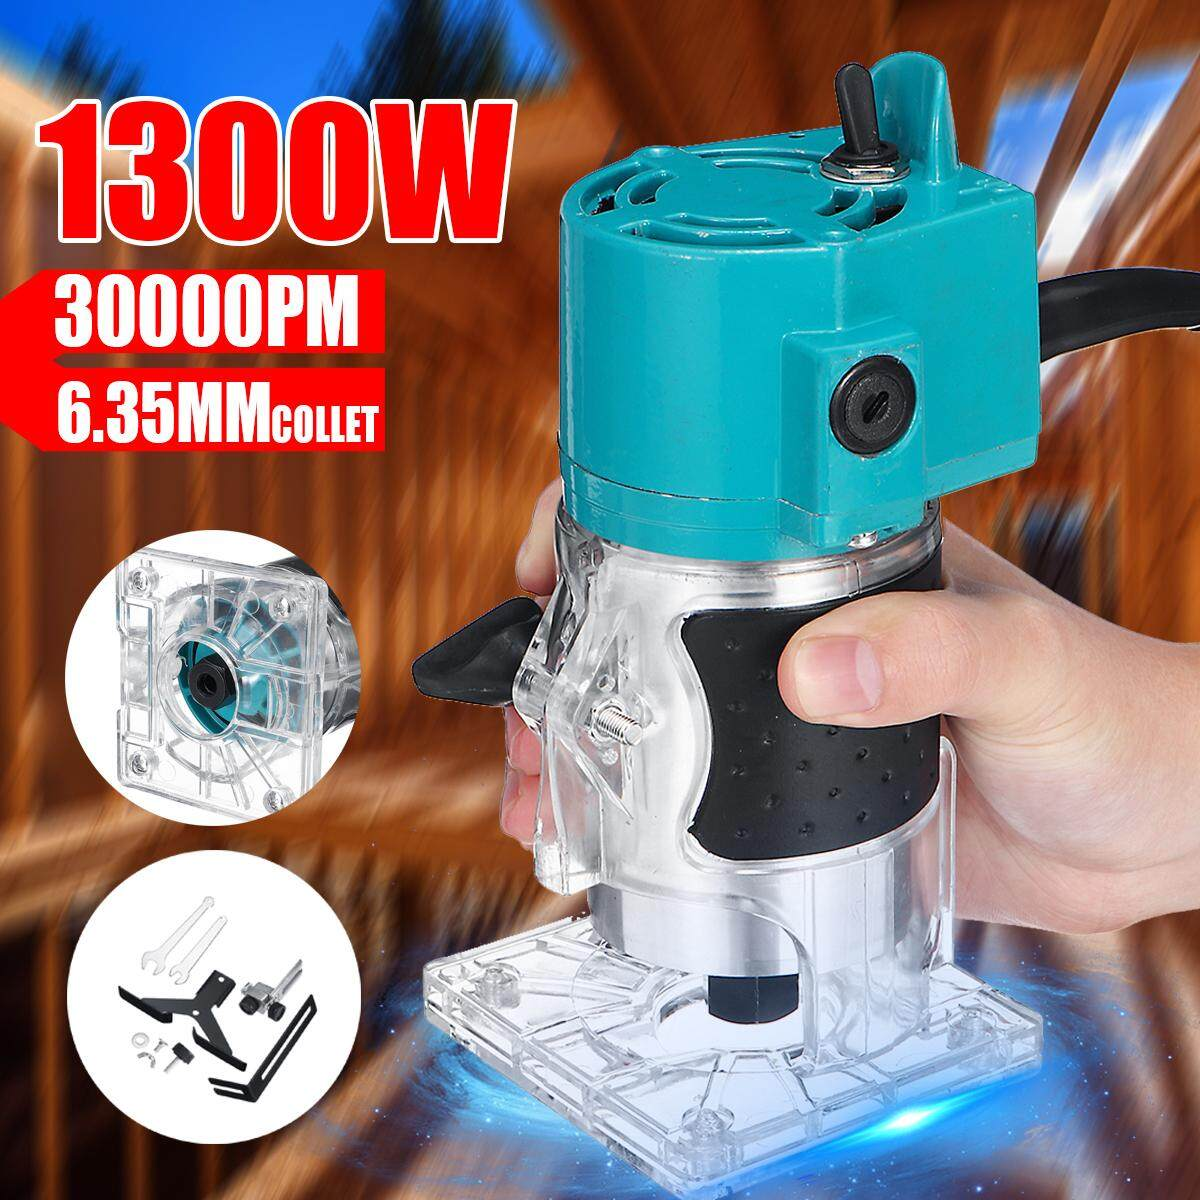 220V 1300W Electric Hand Trimmer Durable Wood Laminate Palm Router Joiner Tool DIY Woodworking Trimming Drilling Edge Cutter